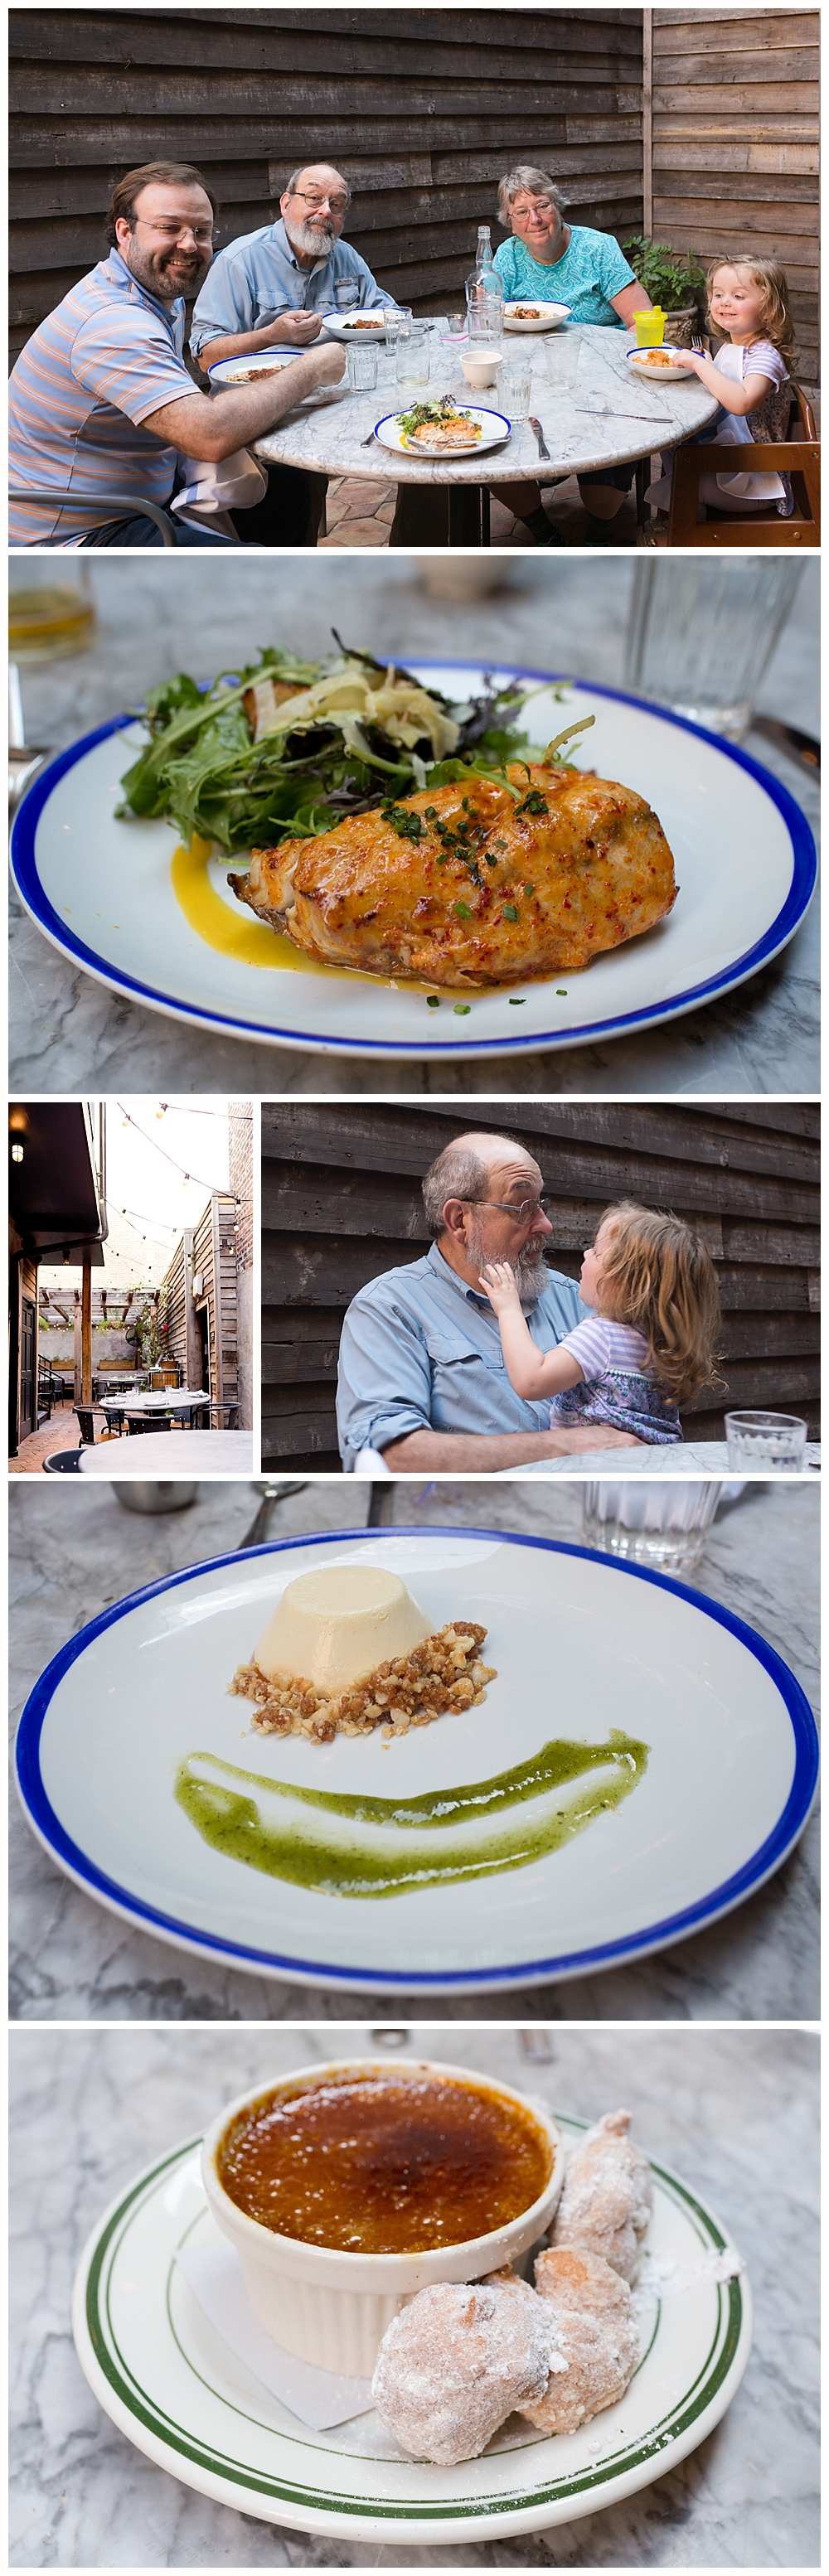 seafood and dessert at Seaworthy restaurant in New Orleans